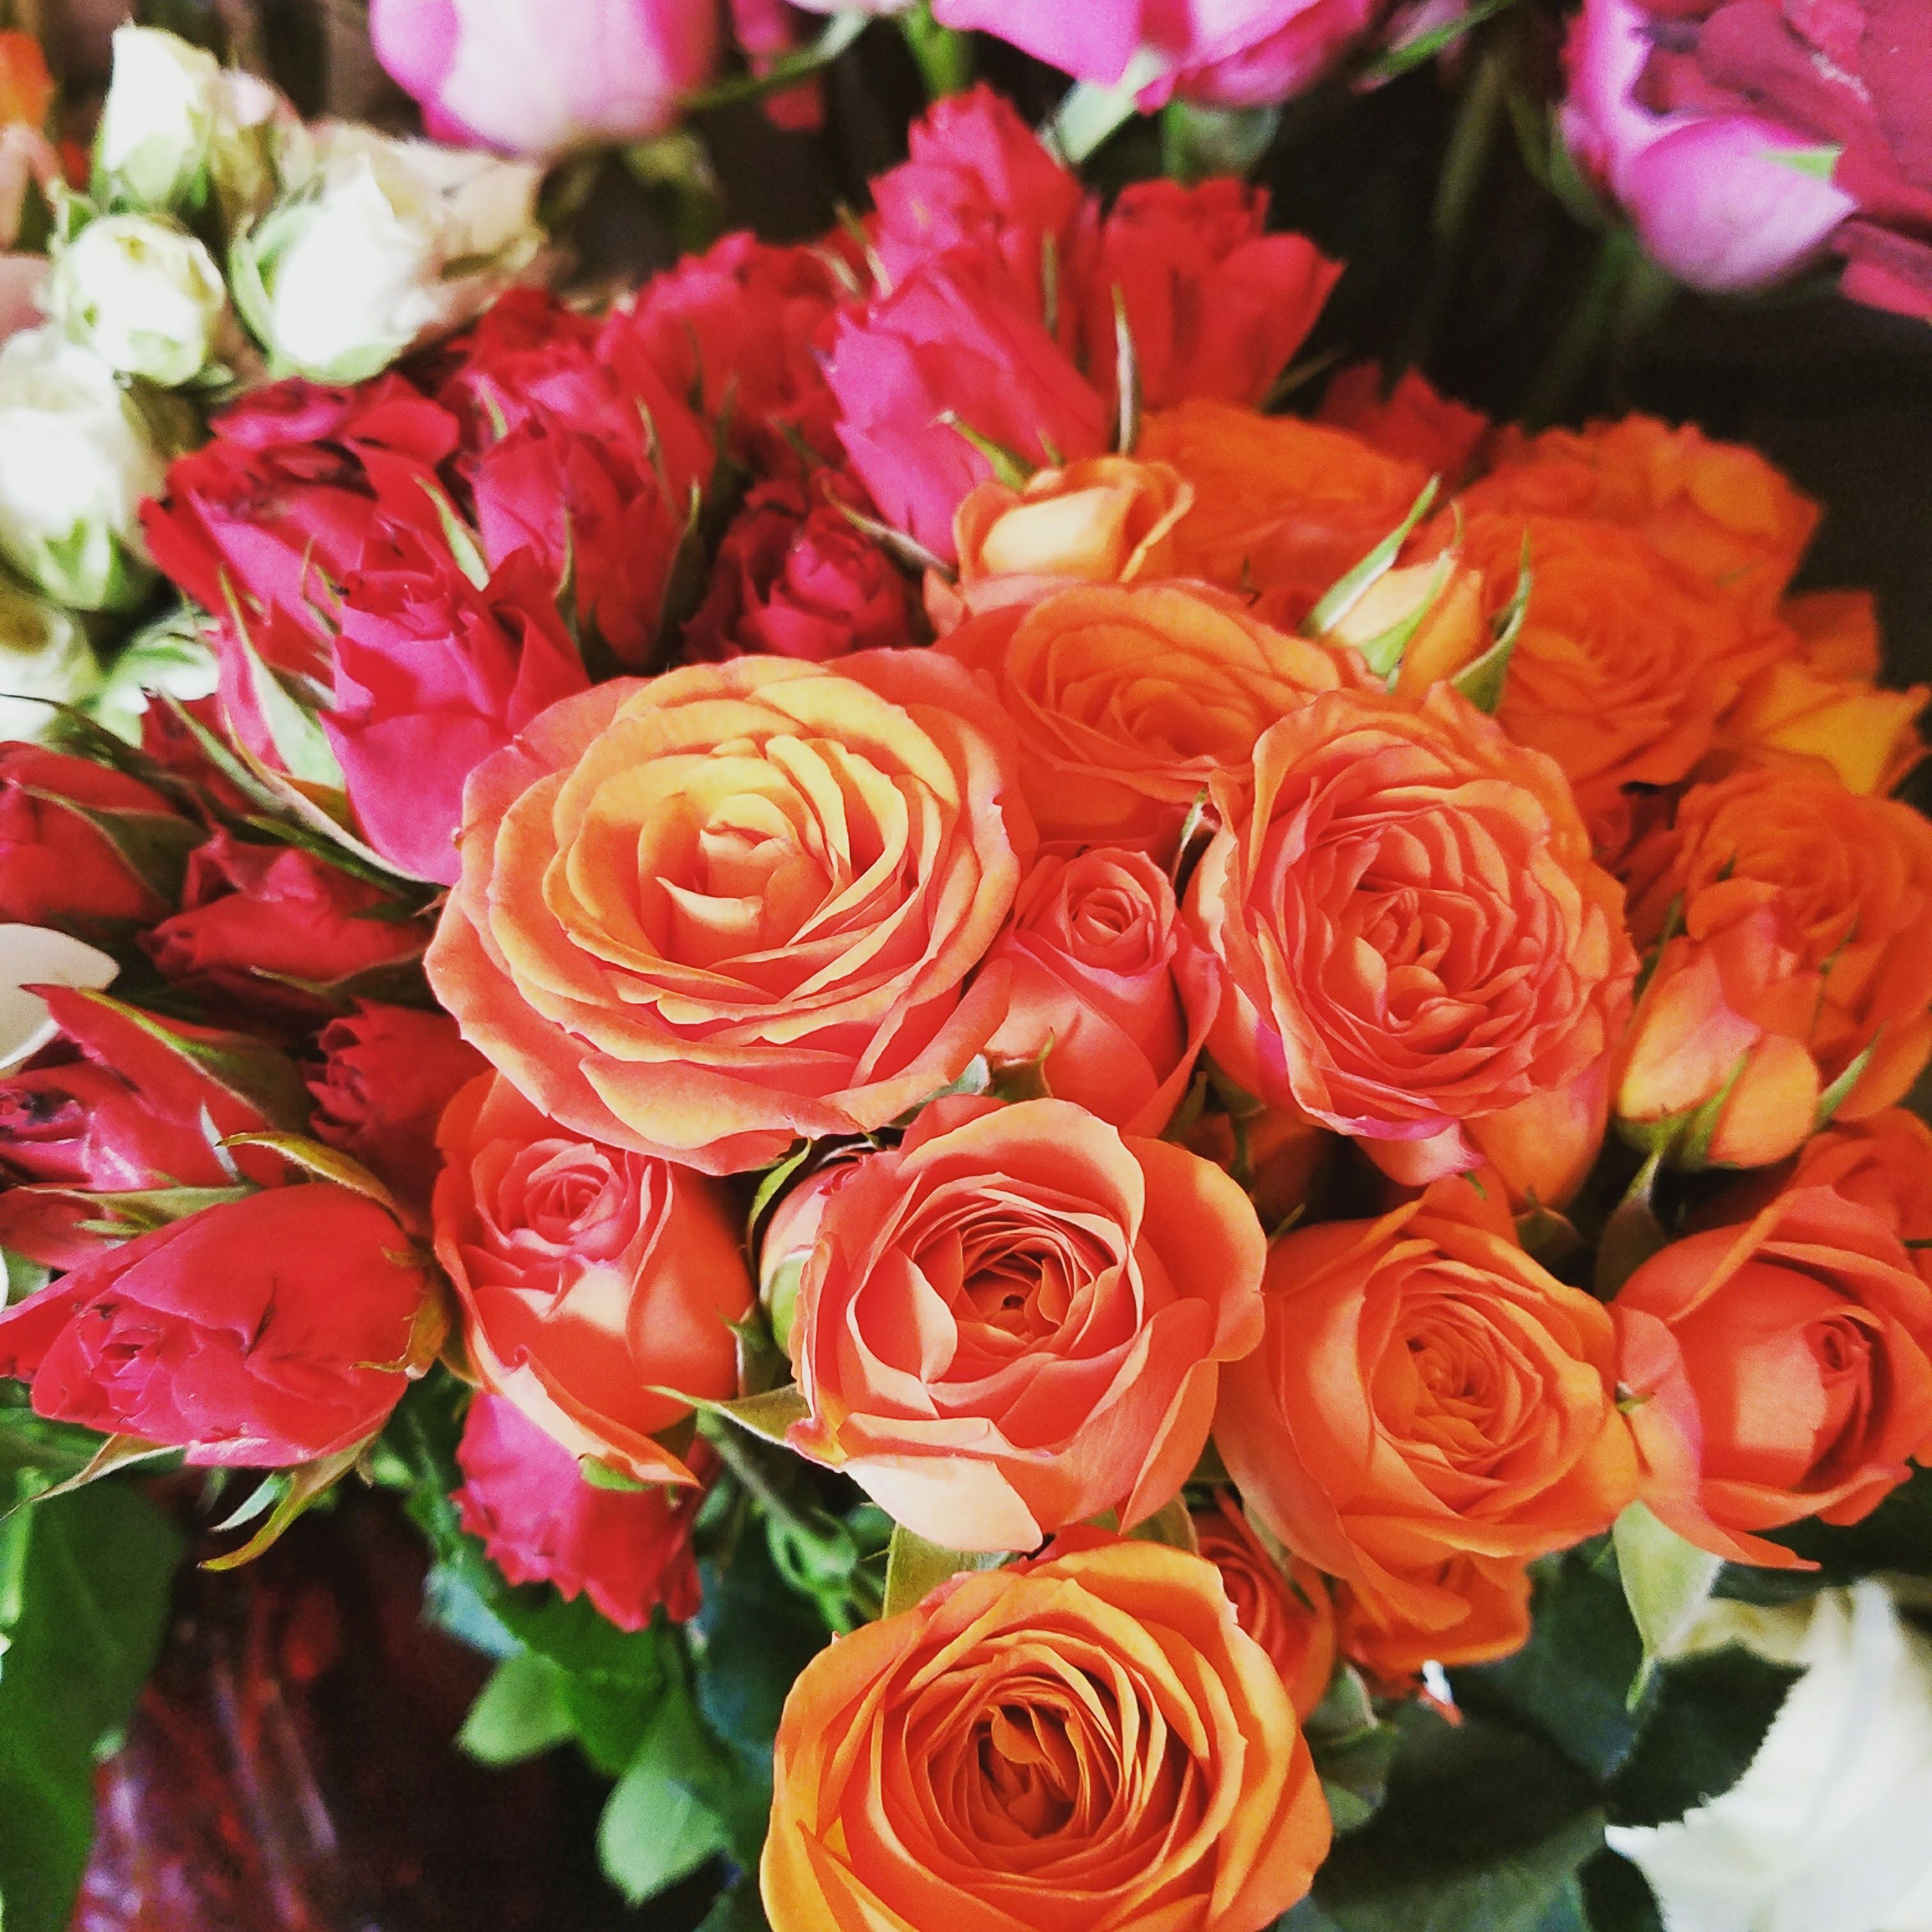 Where to buy bulk flowers online for your wedding babysbreath where to buy bulk flowers online for your wedding these are the biggest blooms of roses and most magnificent succulents at cheap wholesale izmirmasajfo